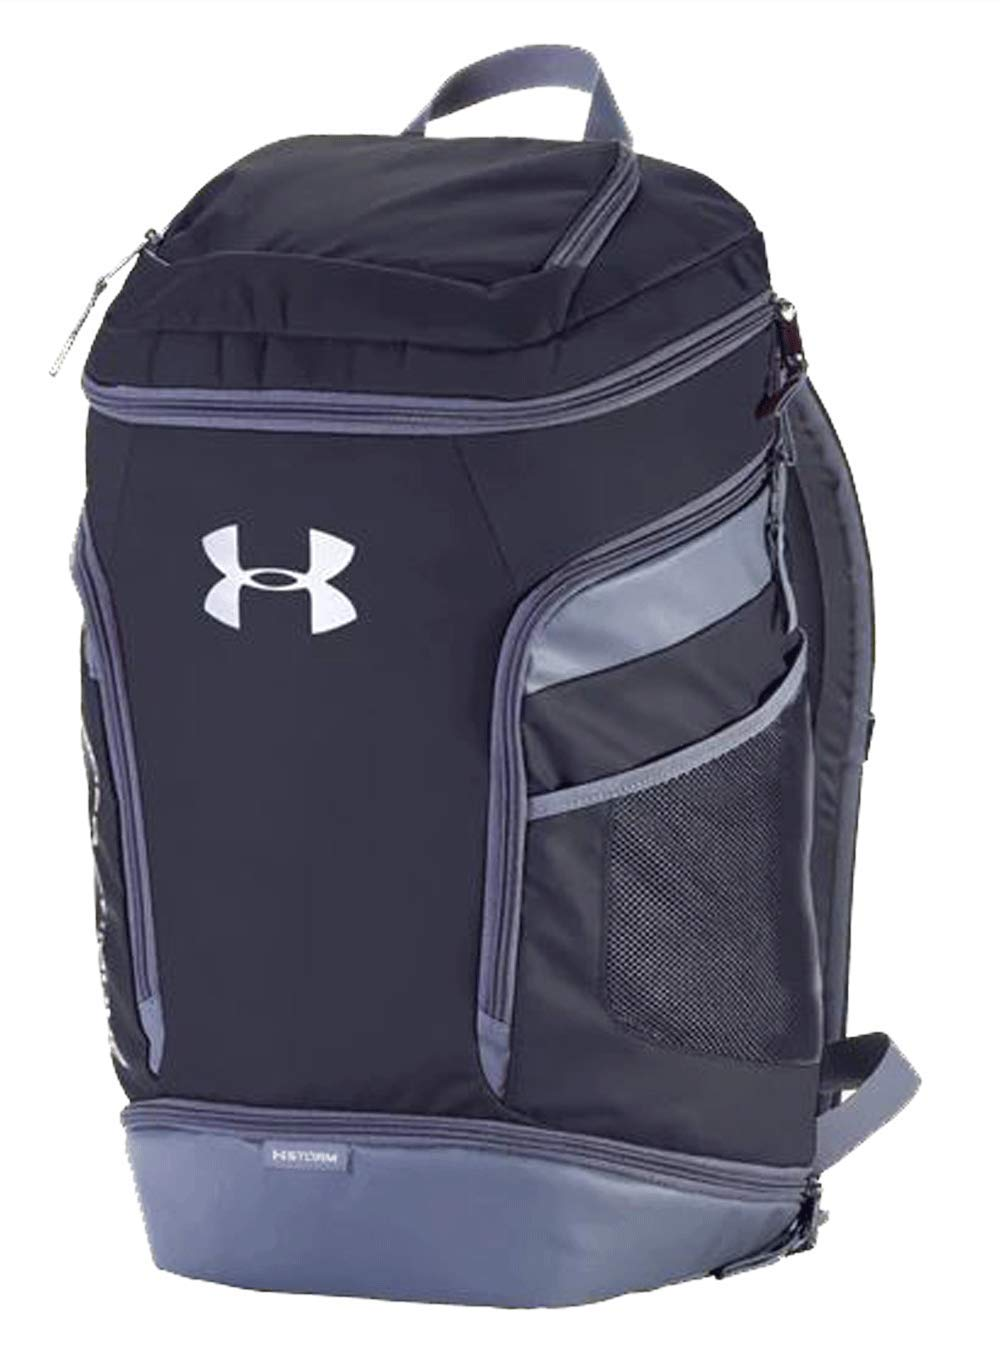 Under Armour Soccer Striker Team Backpack Black by Under Armour